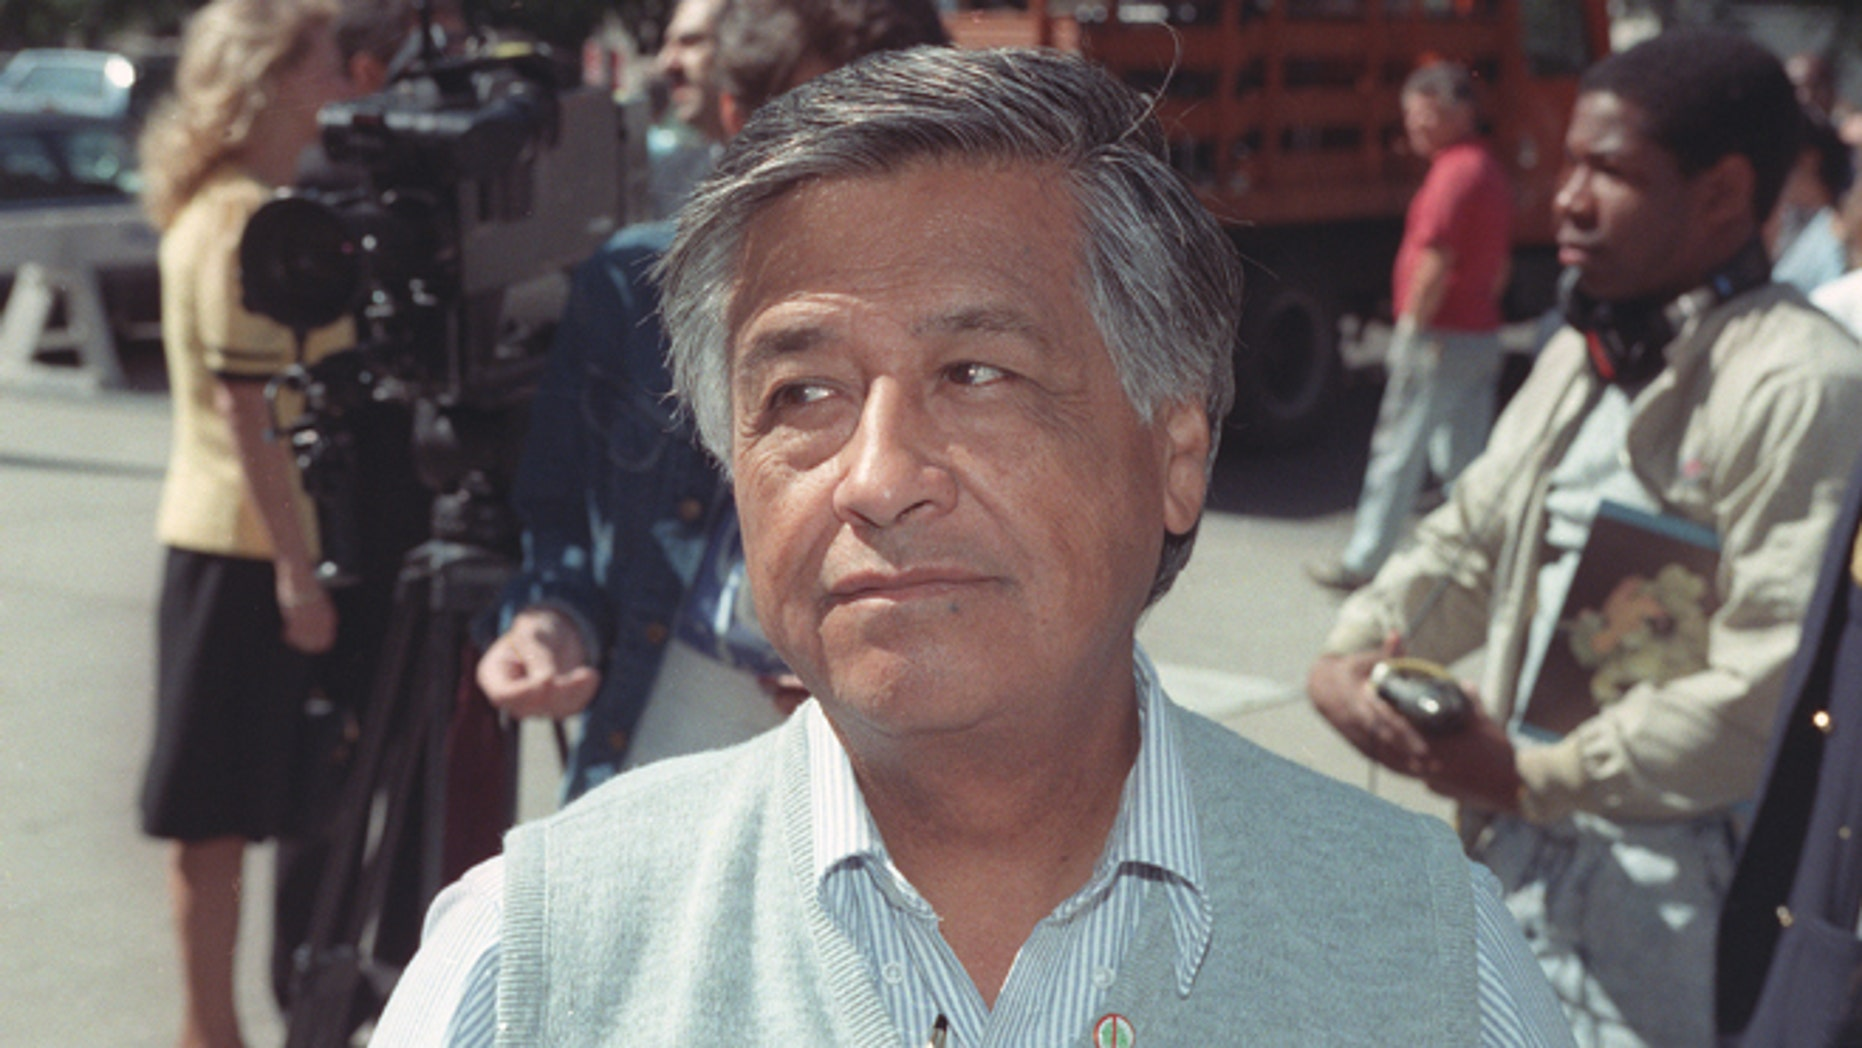 FILE - Cesar Chavez, civil rights advocate and United Farm Workers founder, is shown in this June 29, 1989 file photo. On Thursday April 23, 2015, the 22nd anniversary of his death, Chavez will get full graveside honors from the U.S. Navy at his memorial in California. (AP Photo/Richard Drew, File)